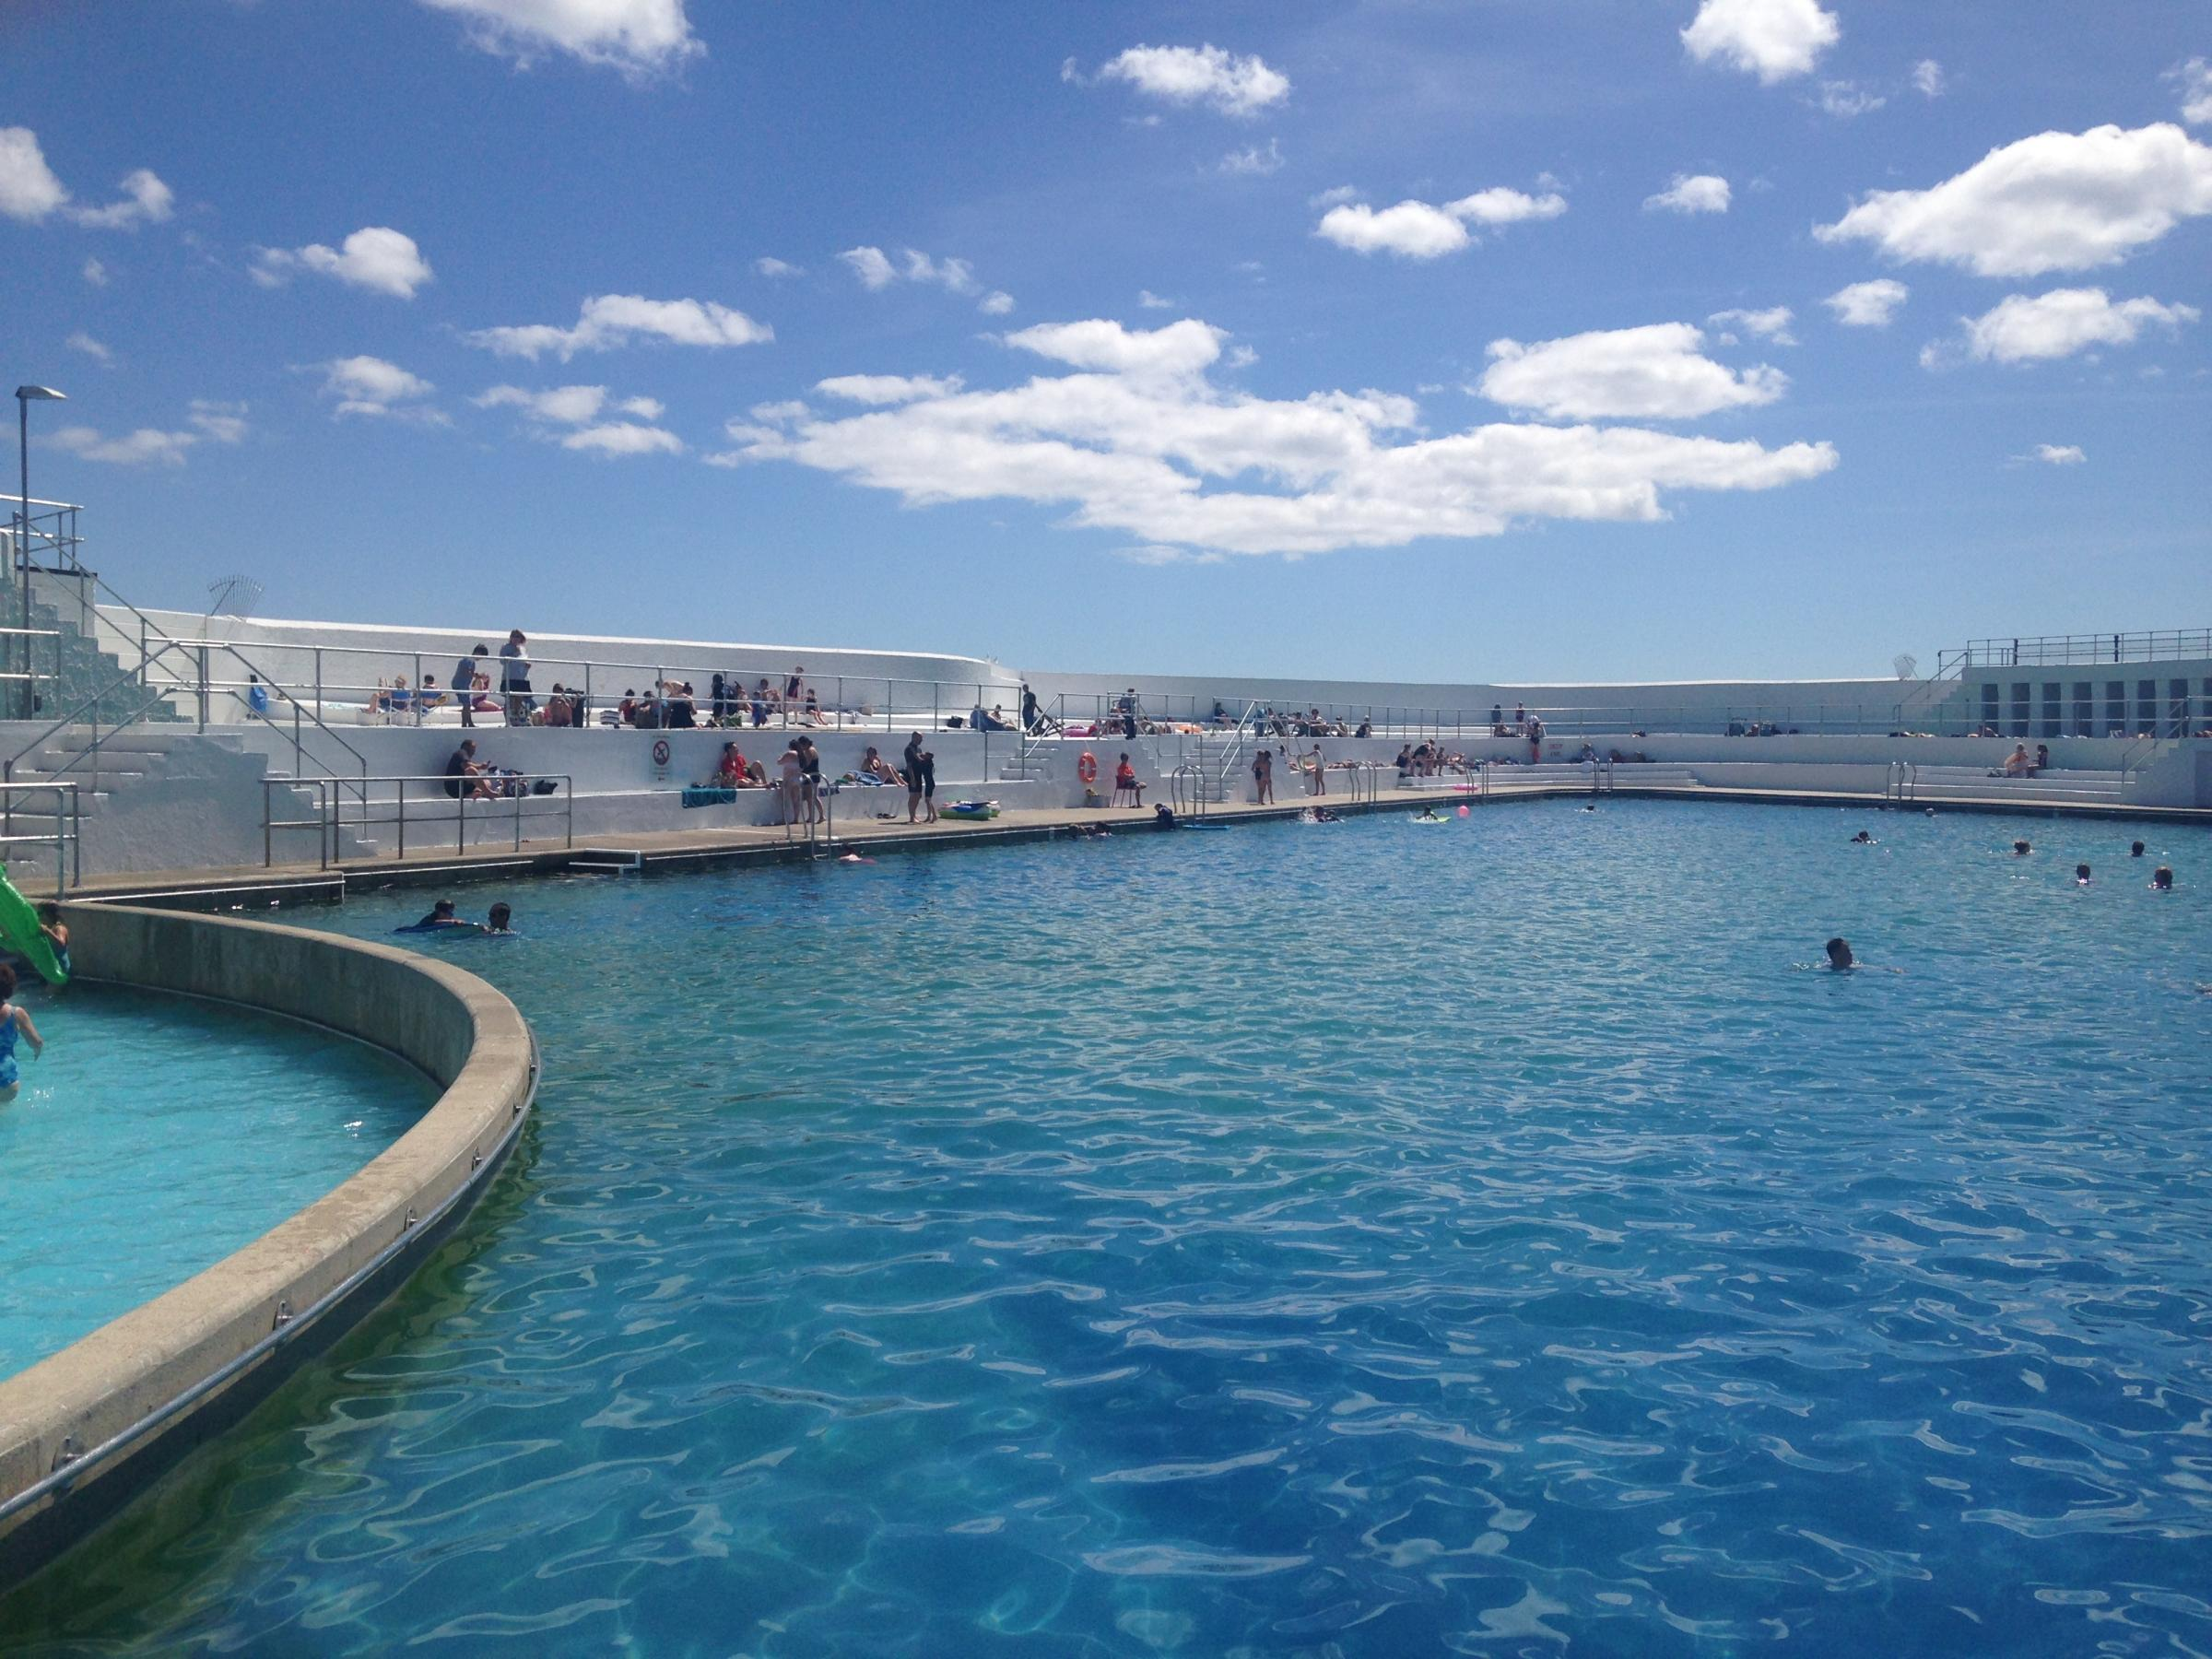 Jubilee Pool opening time set back due to contractual negotiations